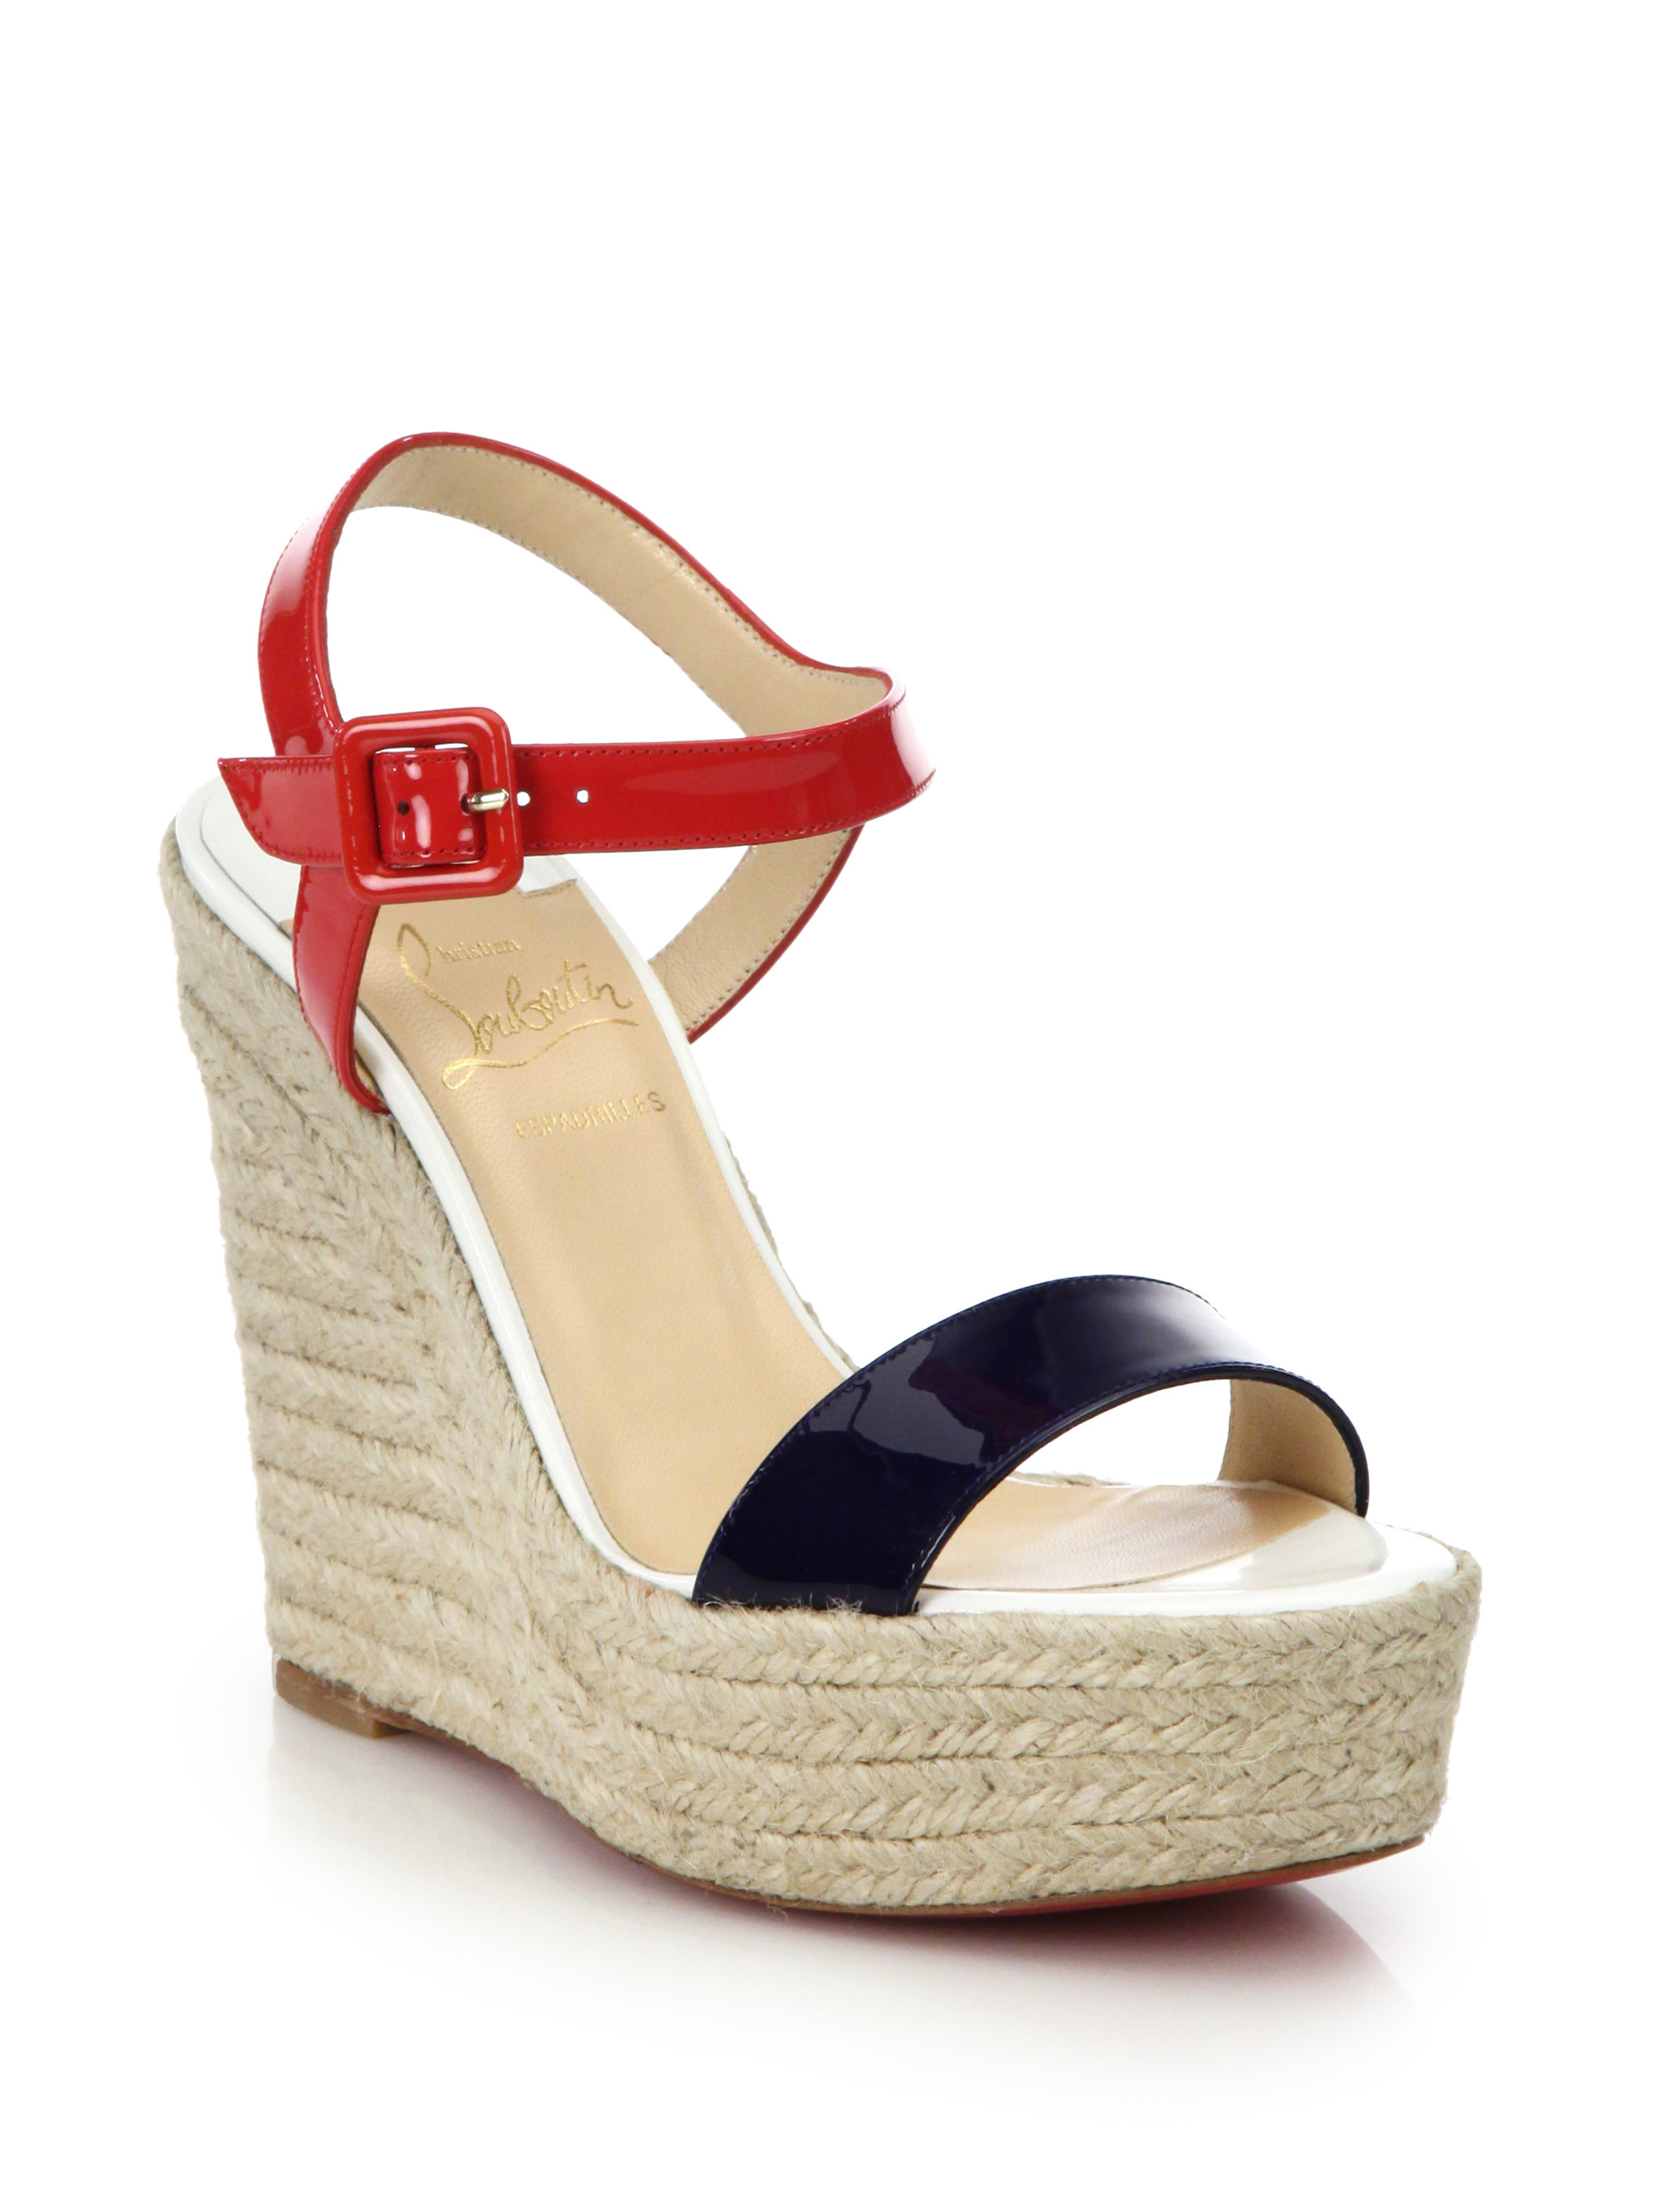 Lyst - Christian Louboutin Spachica Patent Leather Espadrille Wedge ...